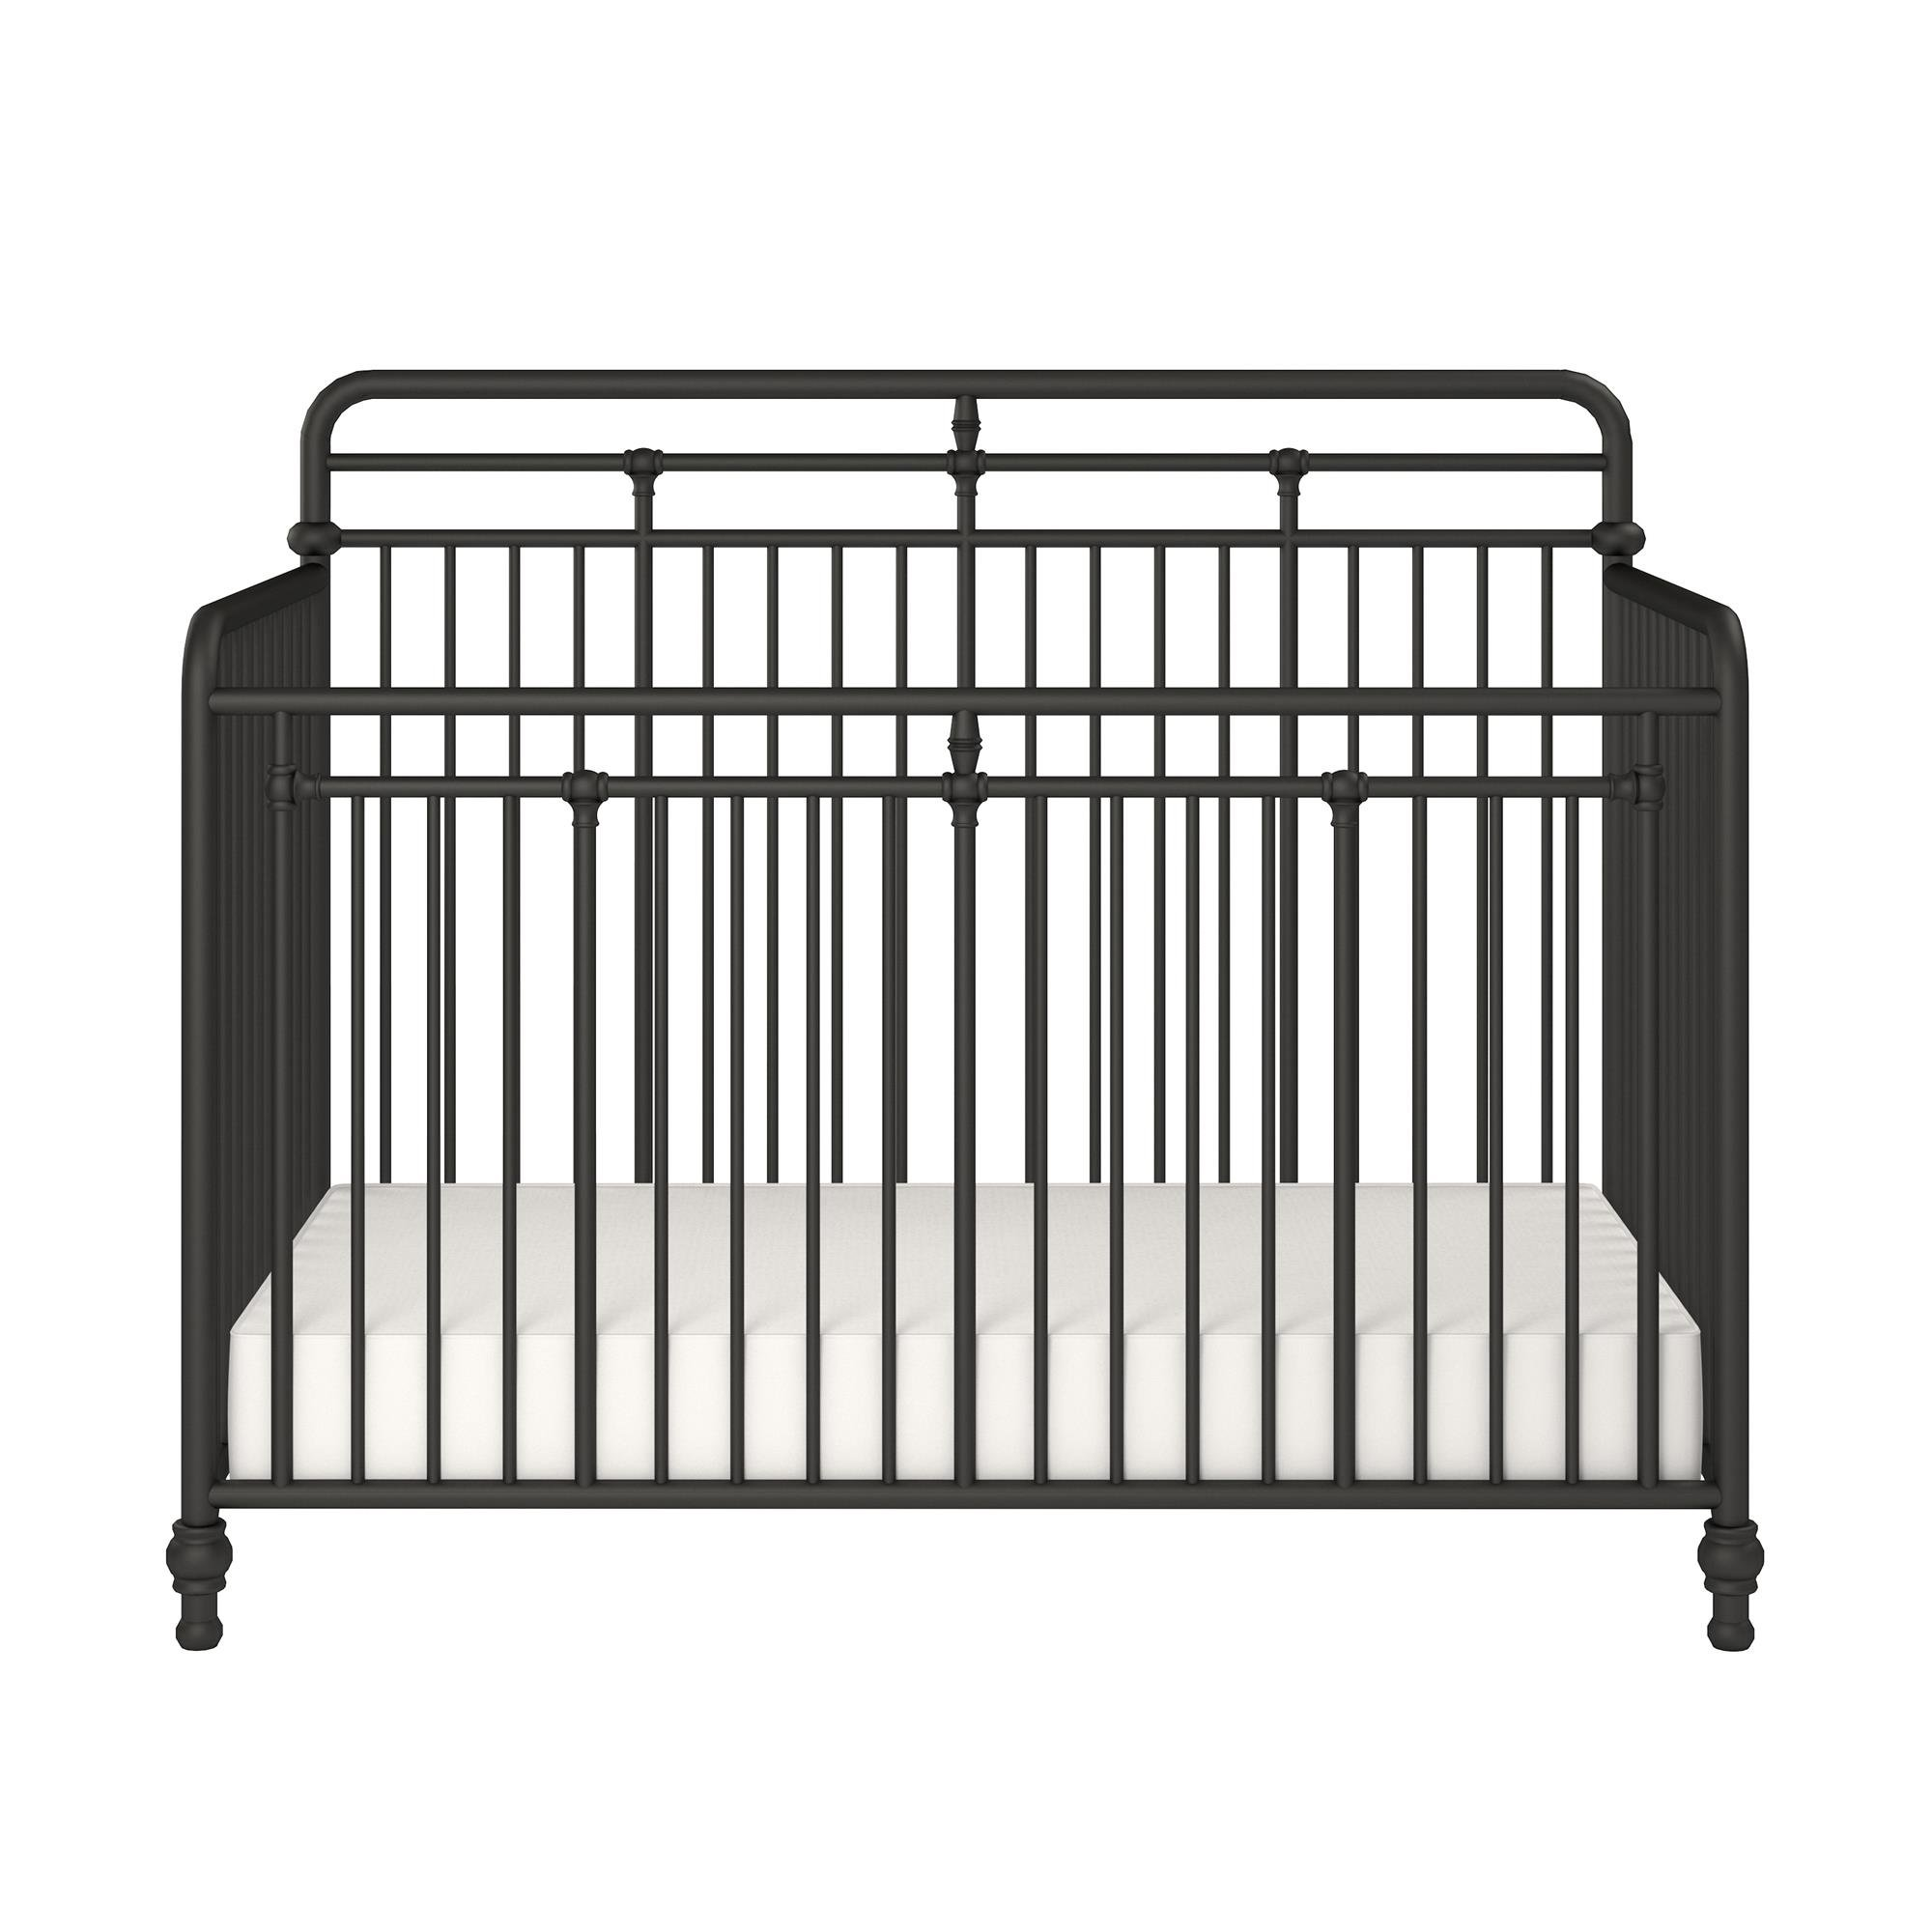 Little Seeds Monarch Hill Hawken 3 in 1 Convertible Metal Crib, Black by Little Seeds